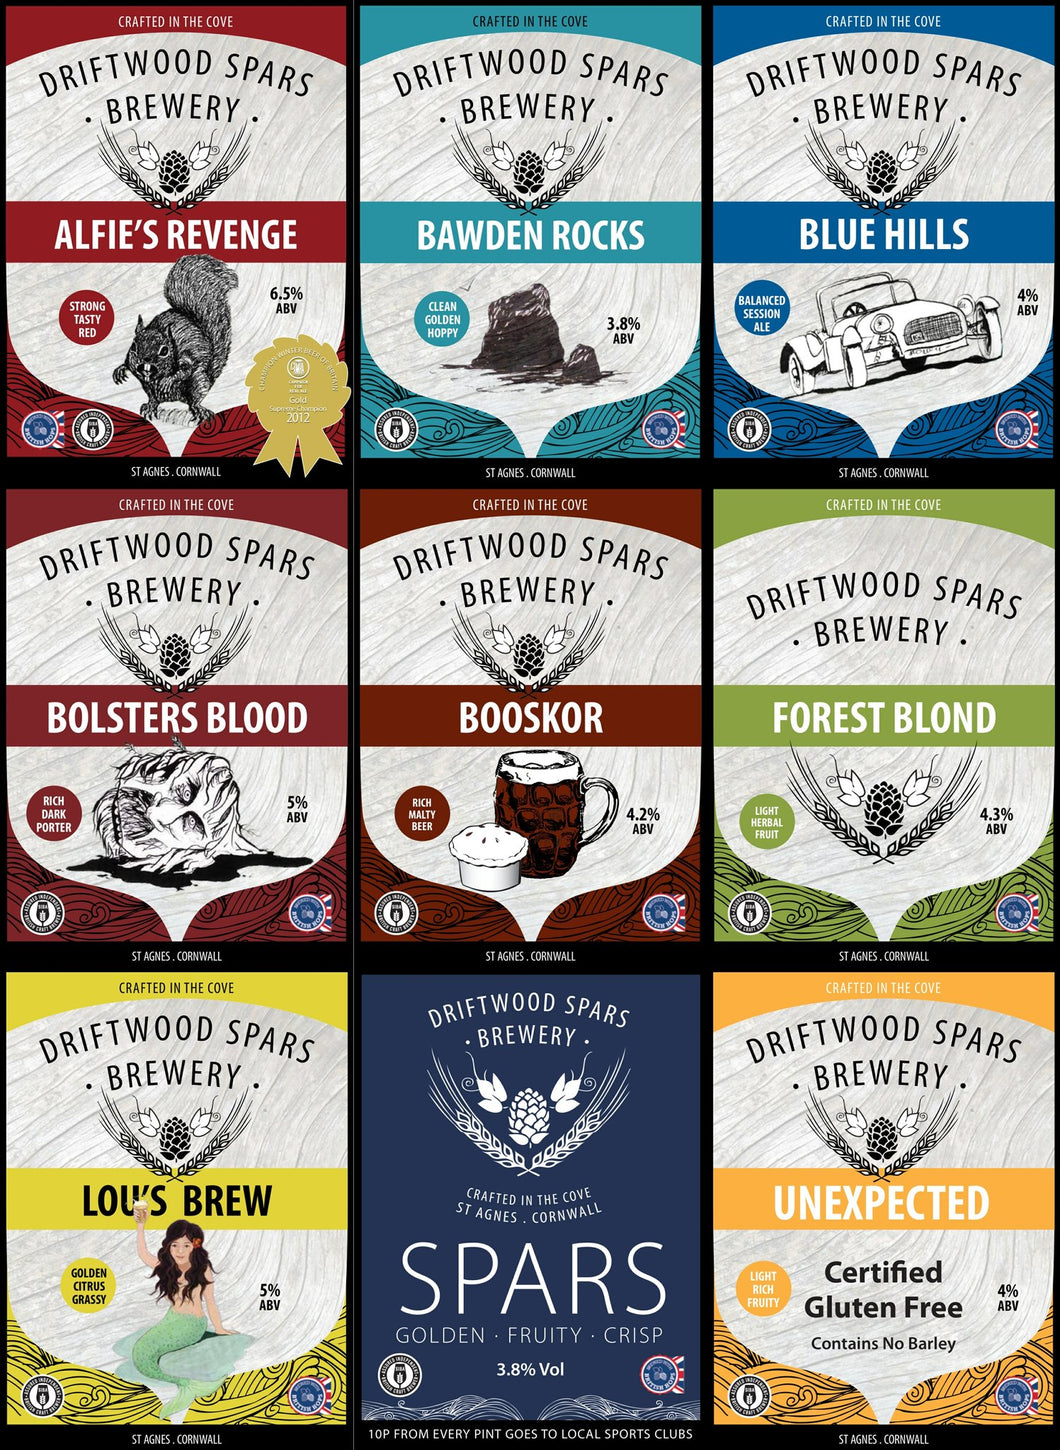 Driftwood Spars Brewery Selection Pack